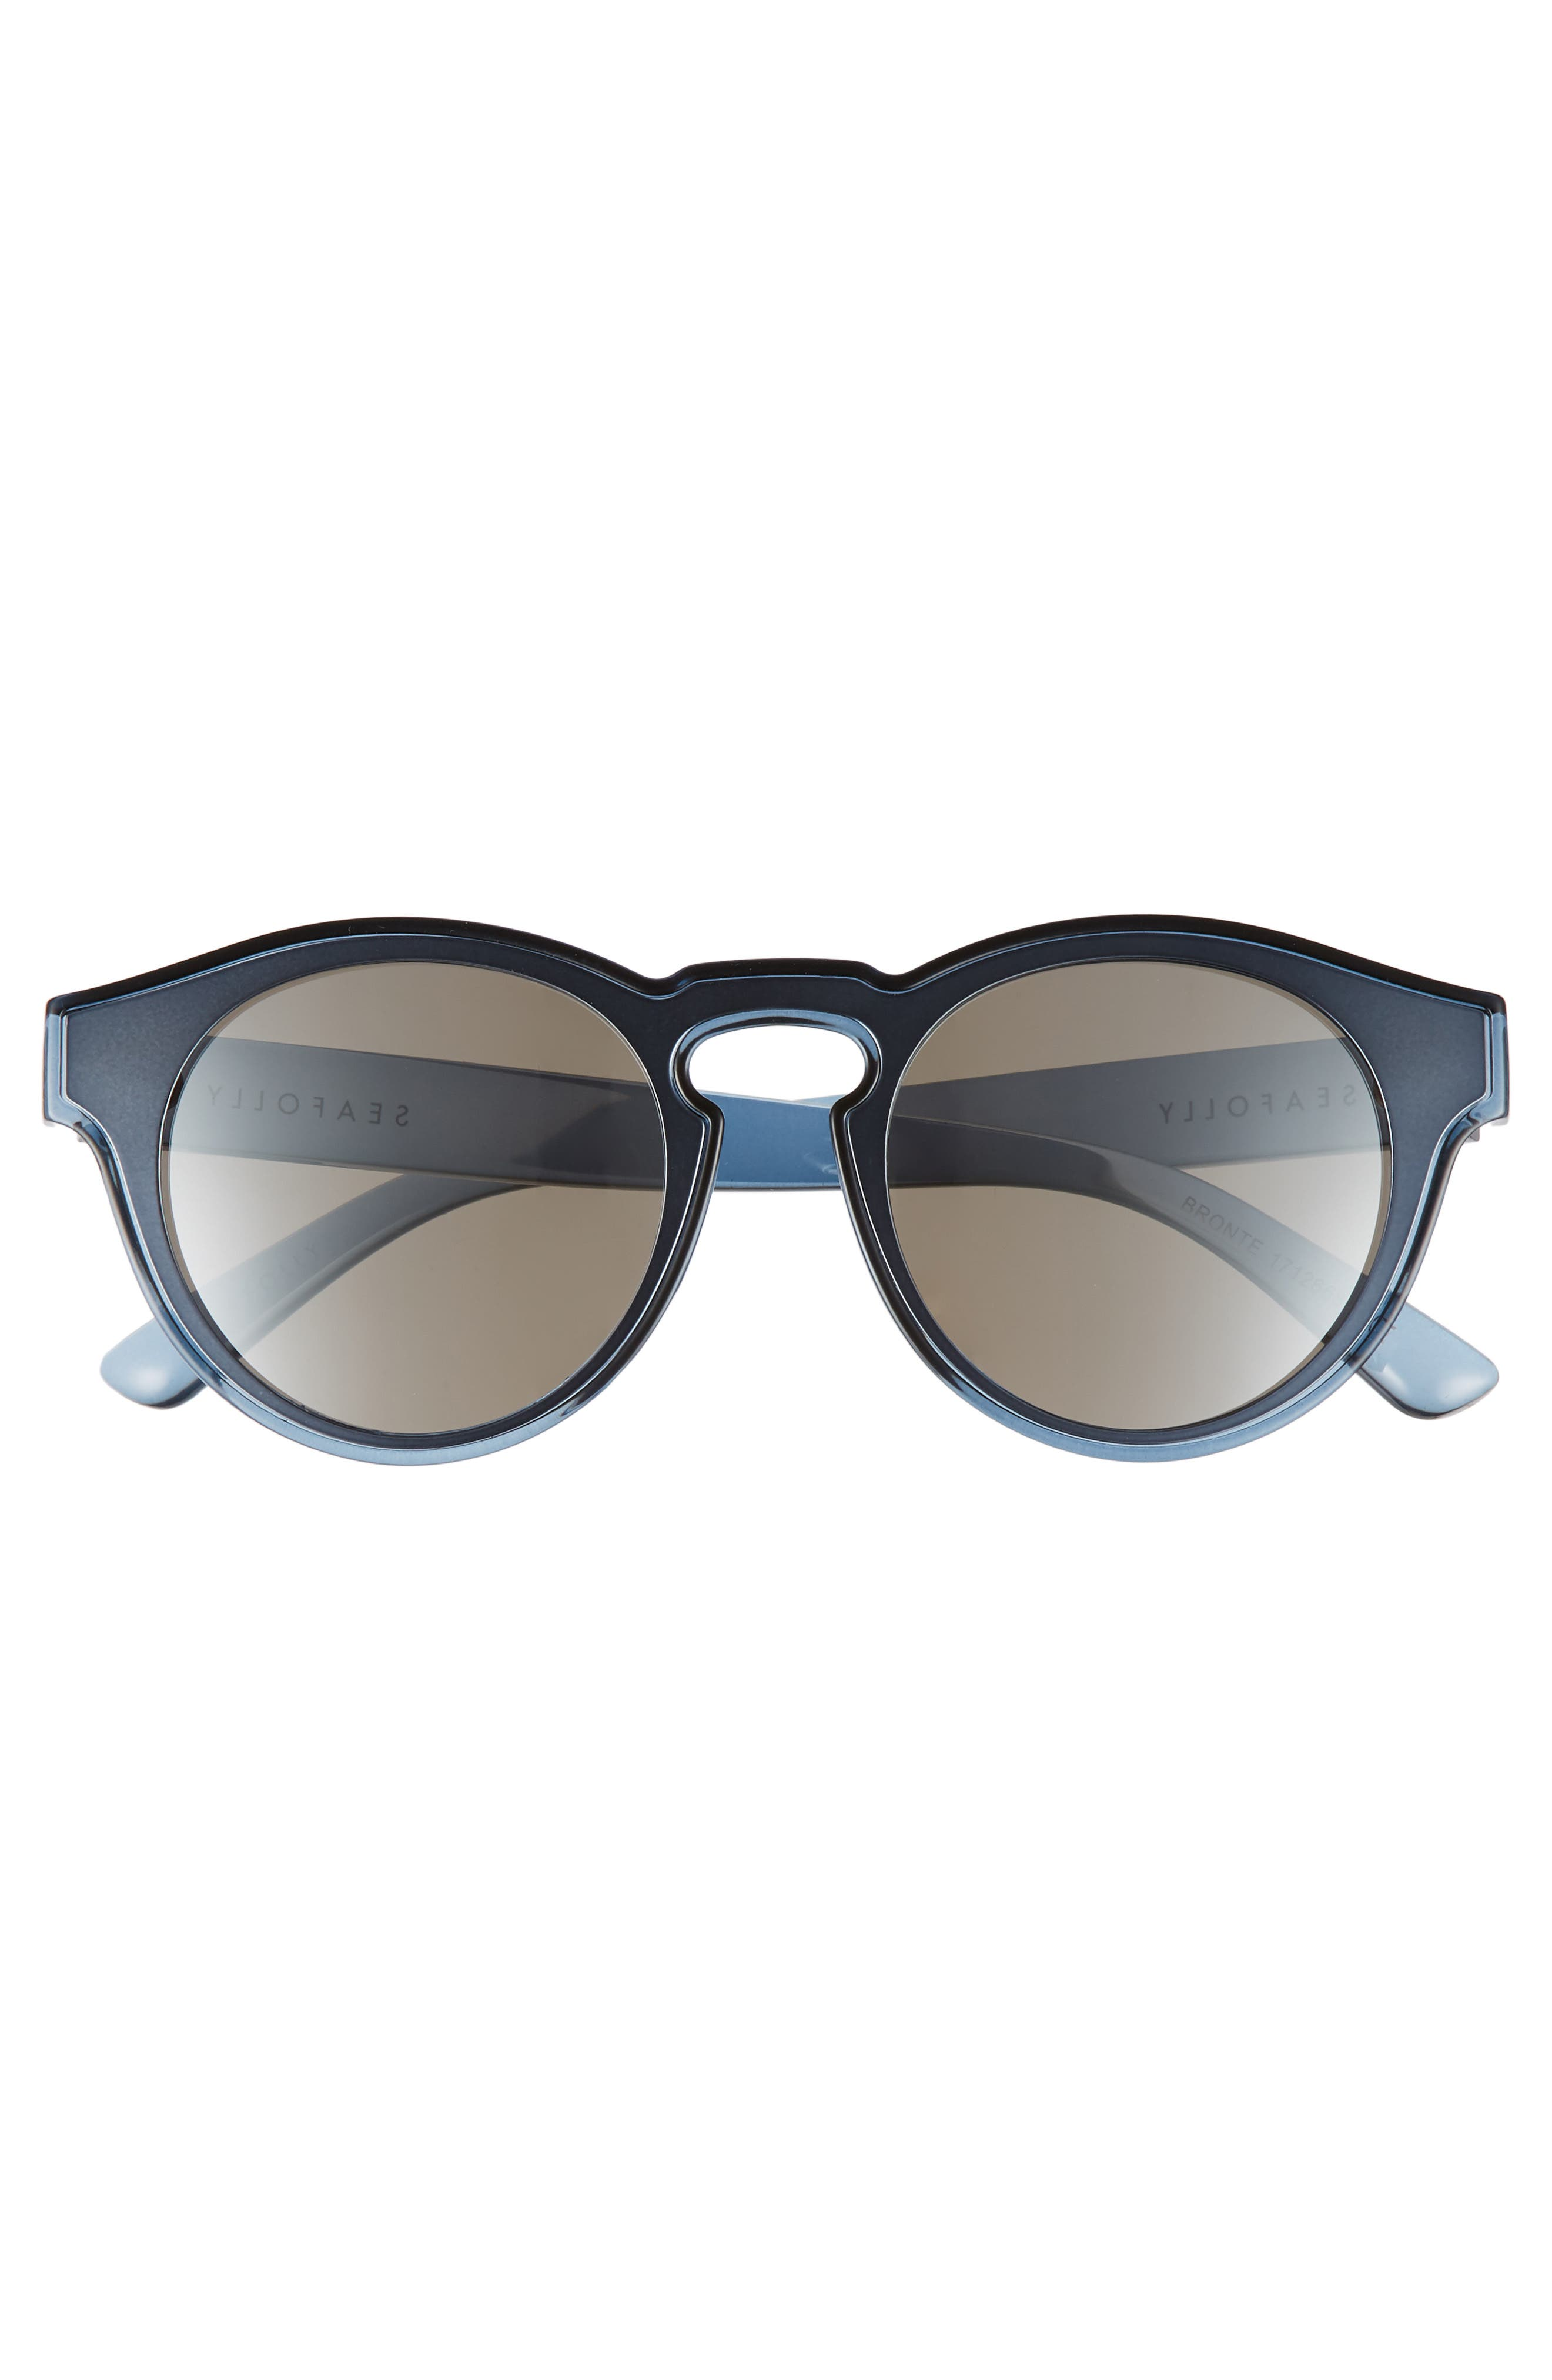 Bronte 50mm Sunglasses,                             Alternate thumbnail 3, color,                             Blue Stone